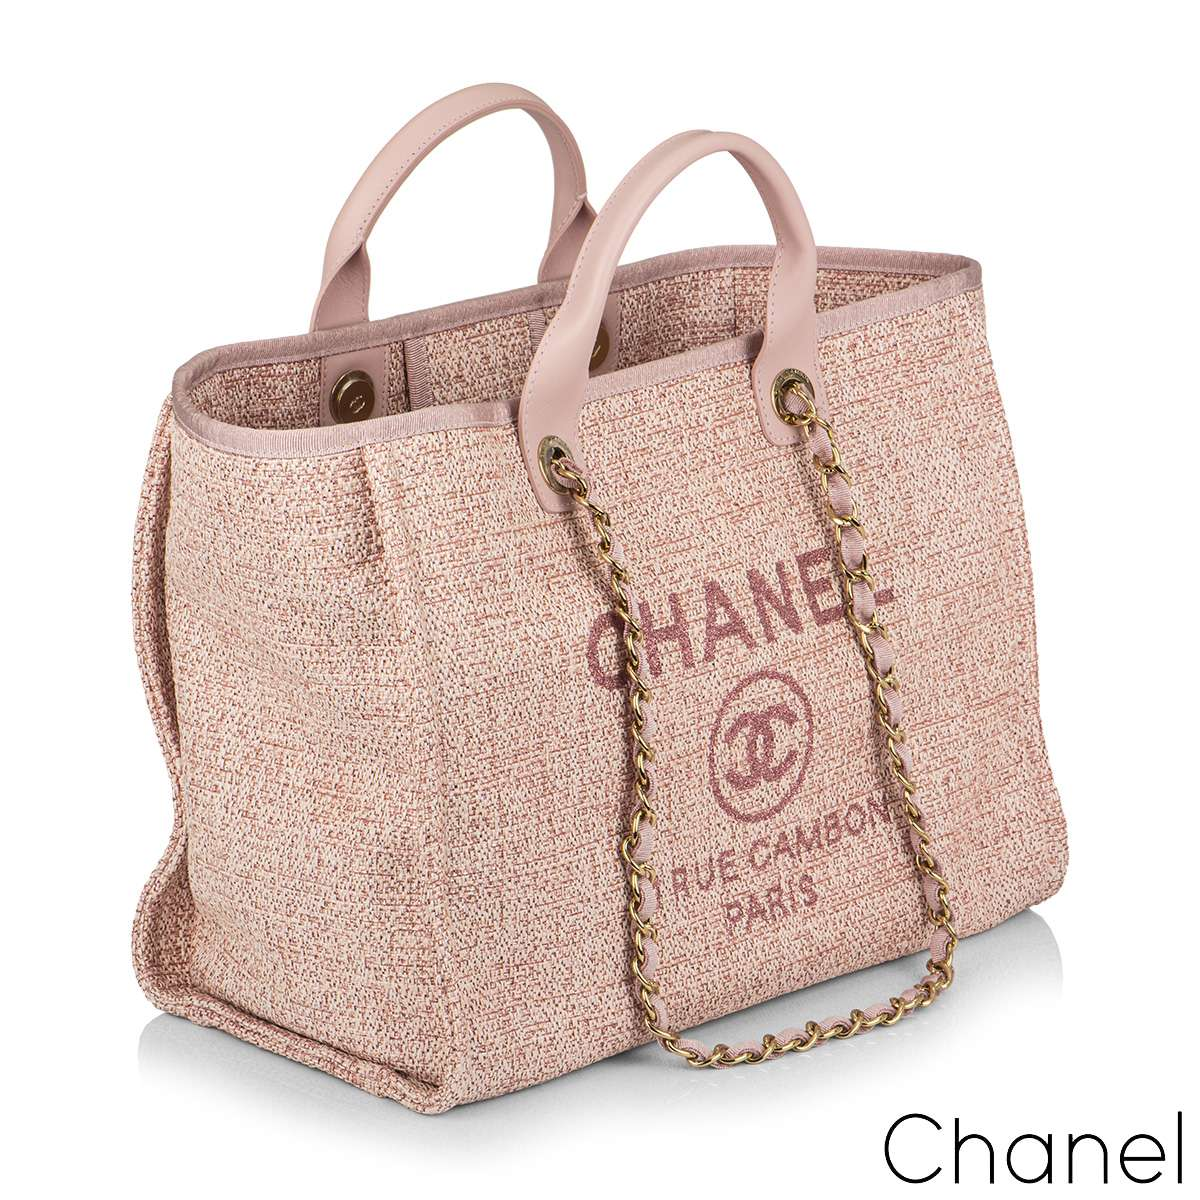 Chanel Large Deauville Tote Pink Tweed Gold Tone Hardware